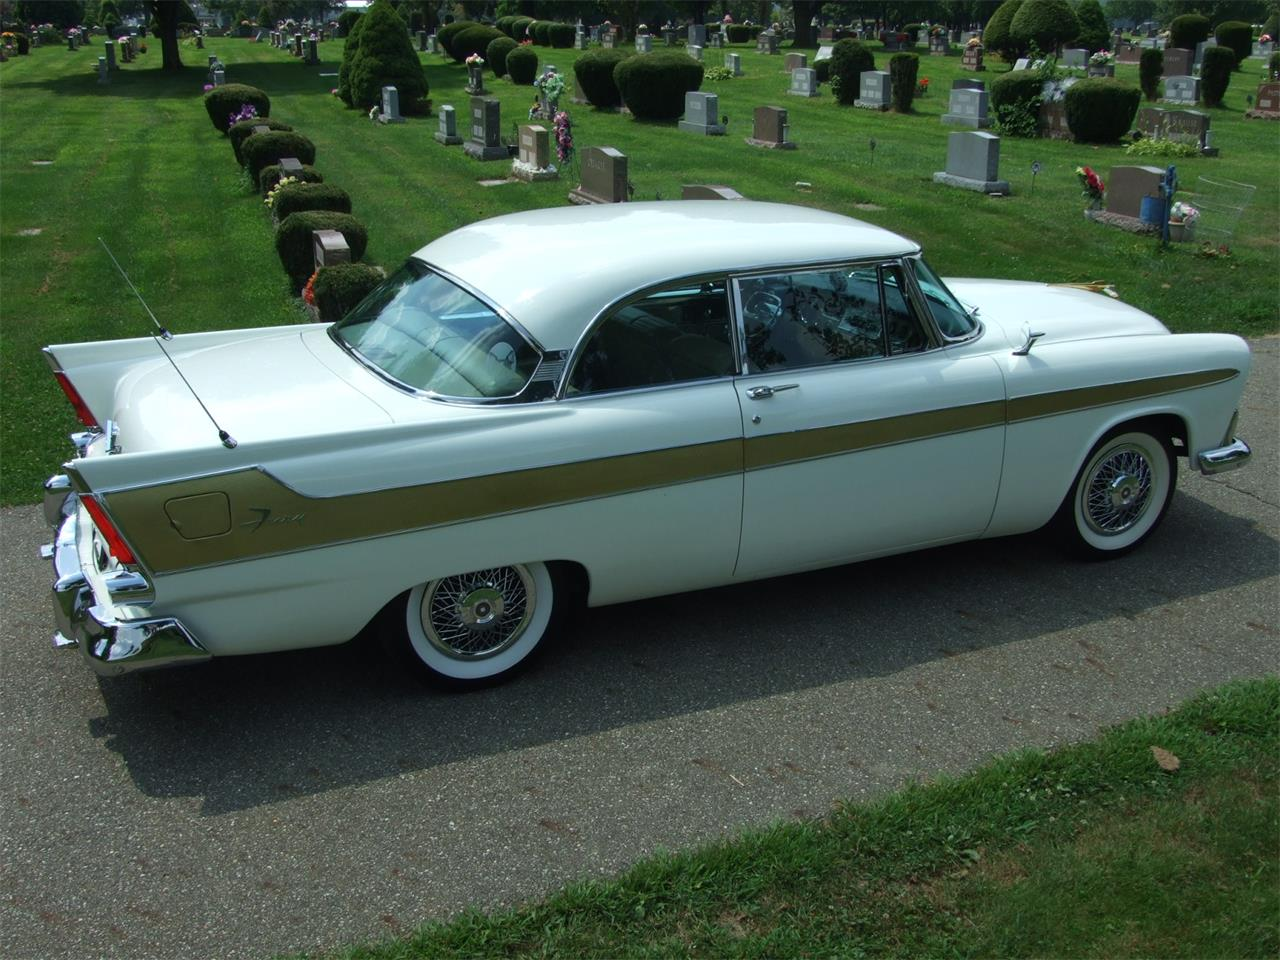 Large Picture of 1956 Plymouth Fury - $69,500.00 Offered by Auto Connection, Inc. - QOZC